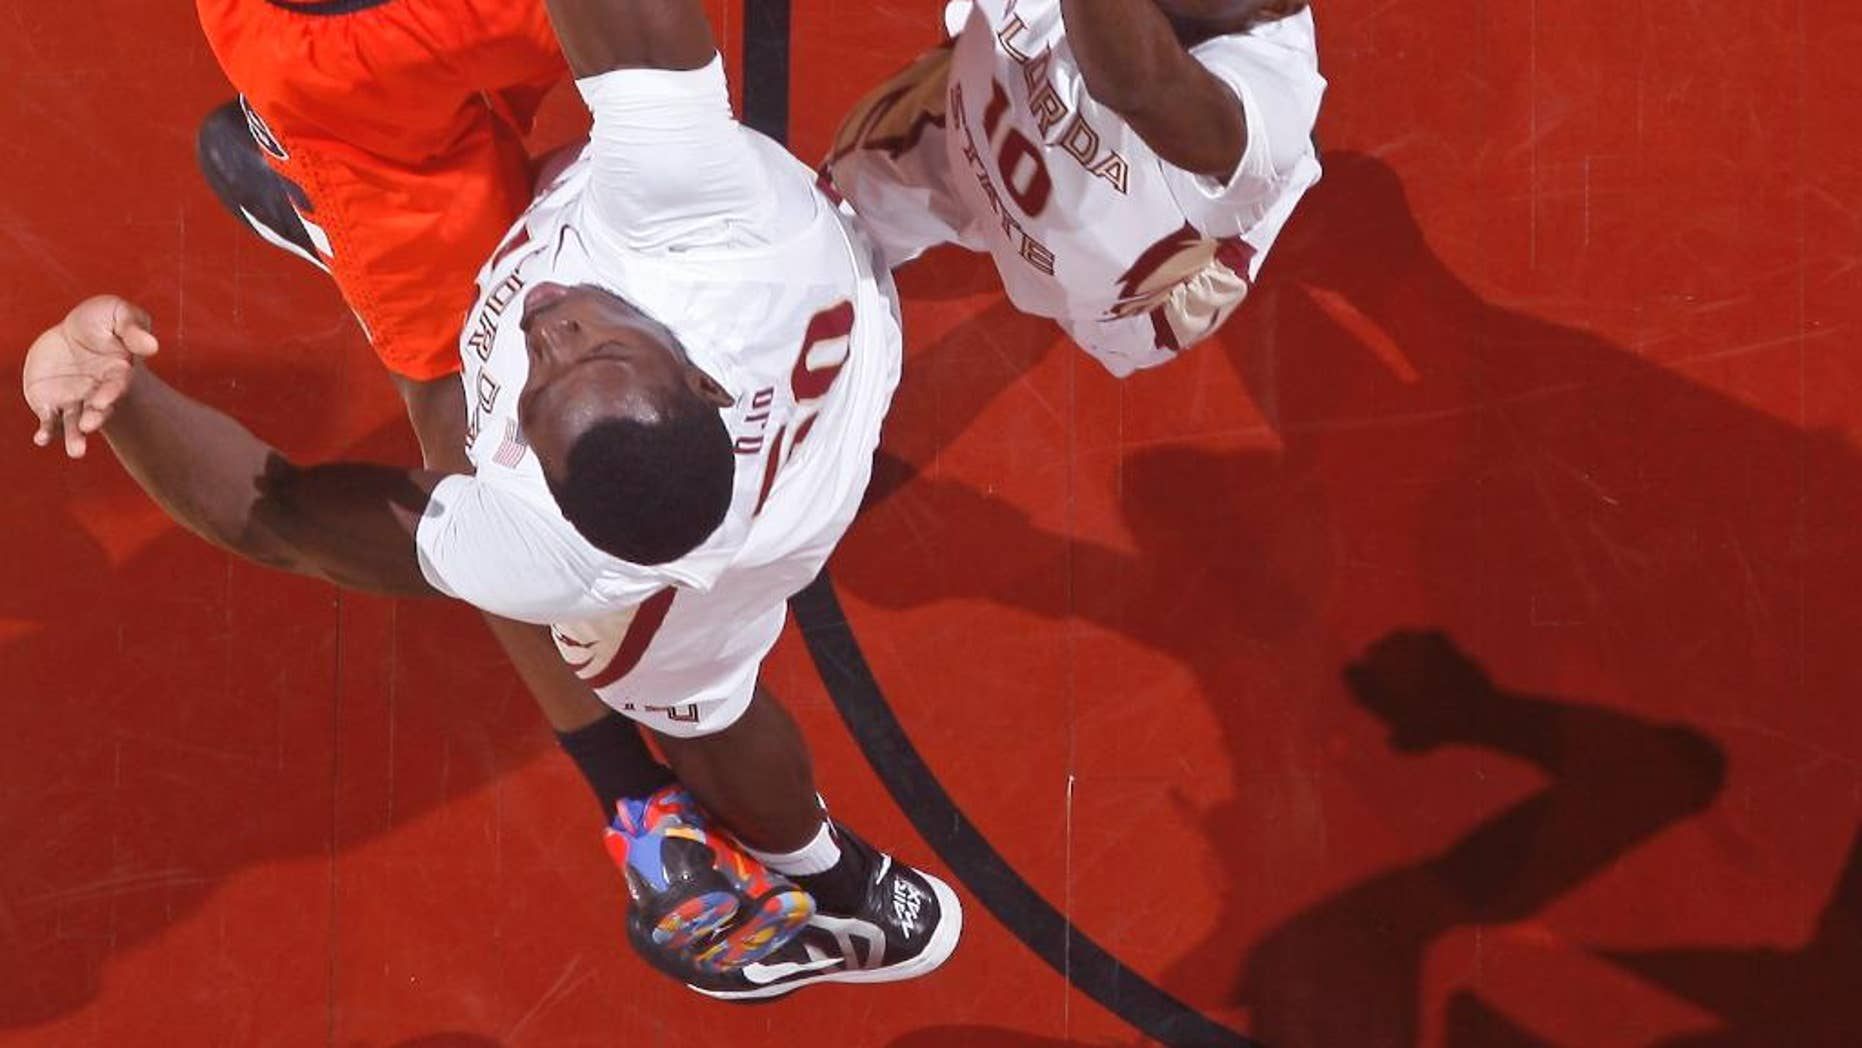 Syracuse forward Jerami Grant, top left, is fouled by Florida State center Michael Ojo (50) as Florida State forward Okaro White (10) defends in the first half of an NCAA college basketball game on Sunday, March 9, 2014, in Tallahassee, Fla. (AP Photo/Phil Sears)